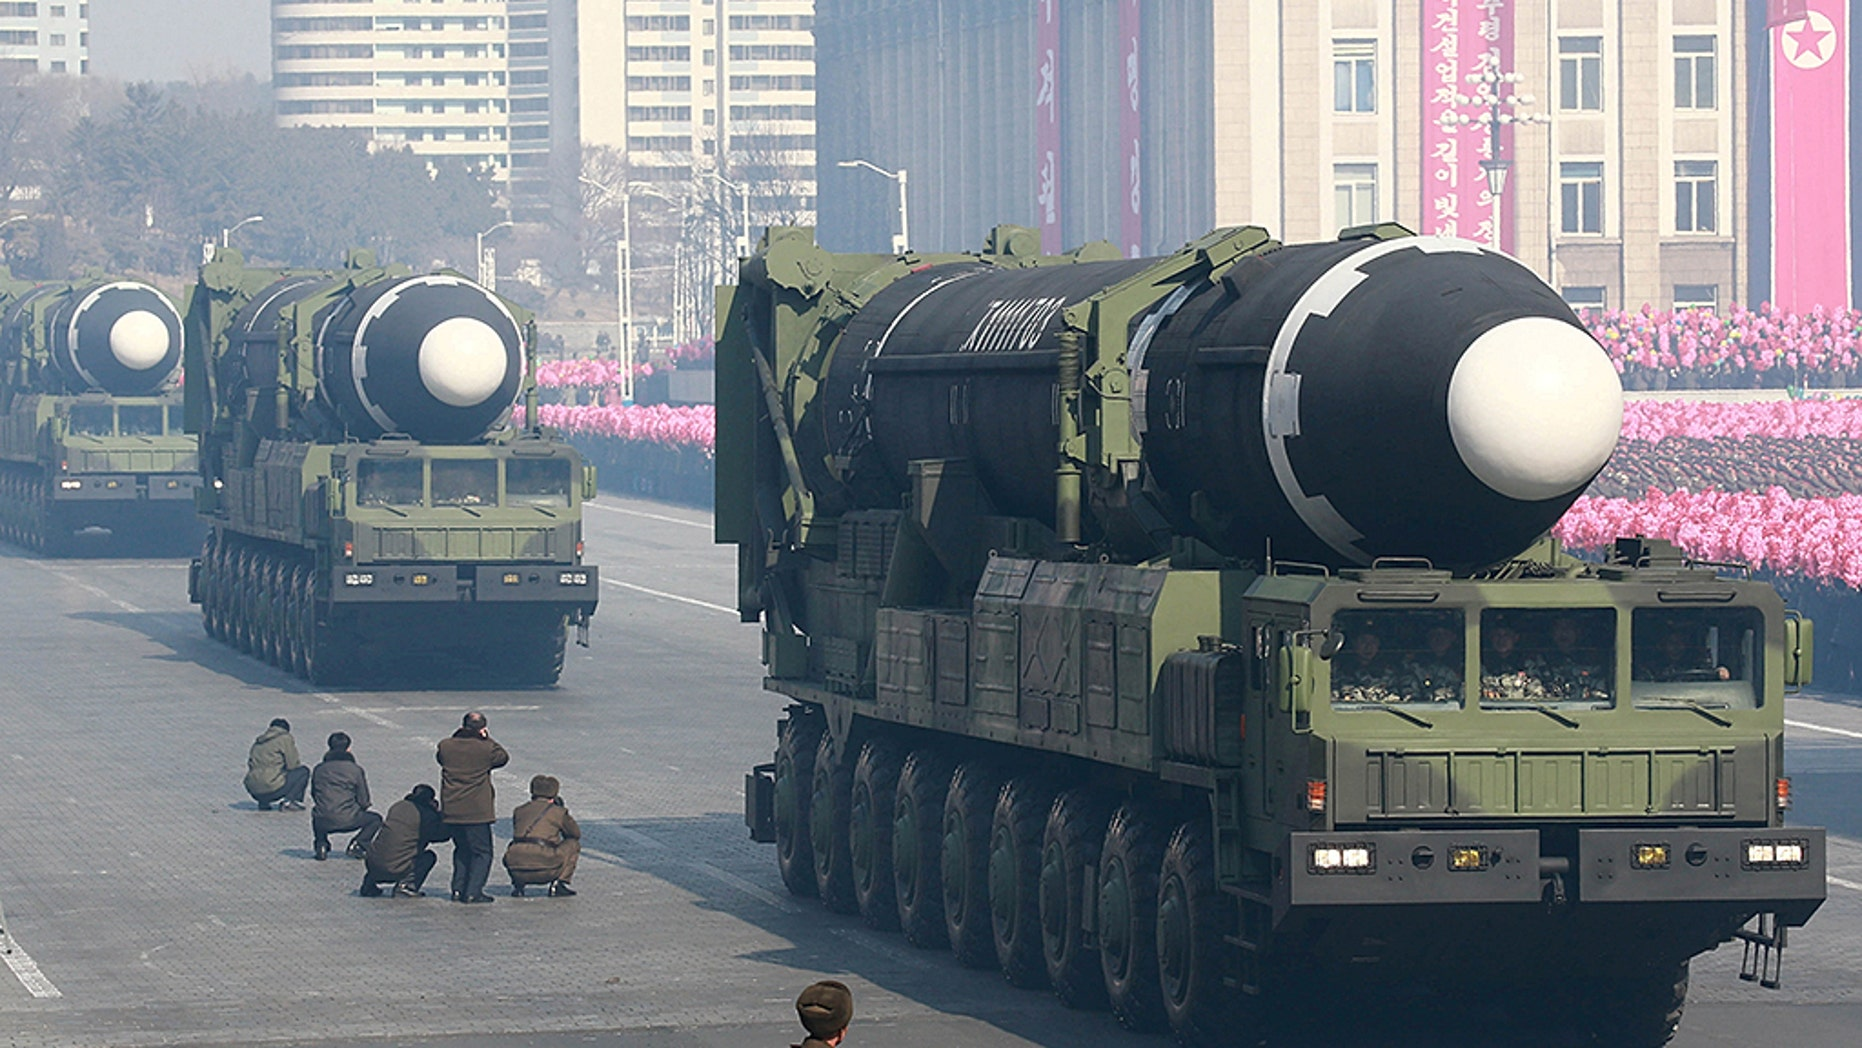 Intercontinental ballistic missiles are seen at a grand military parade in Pyongyang, North Korea.